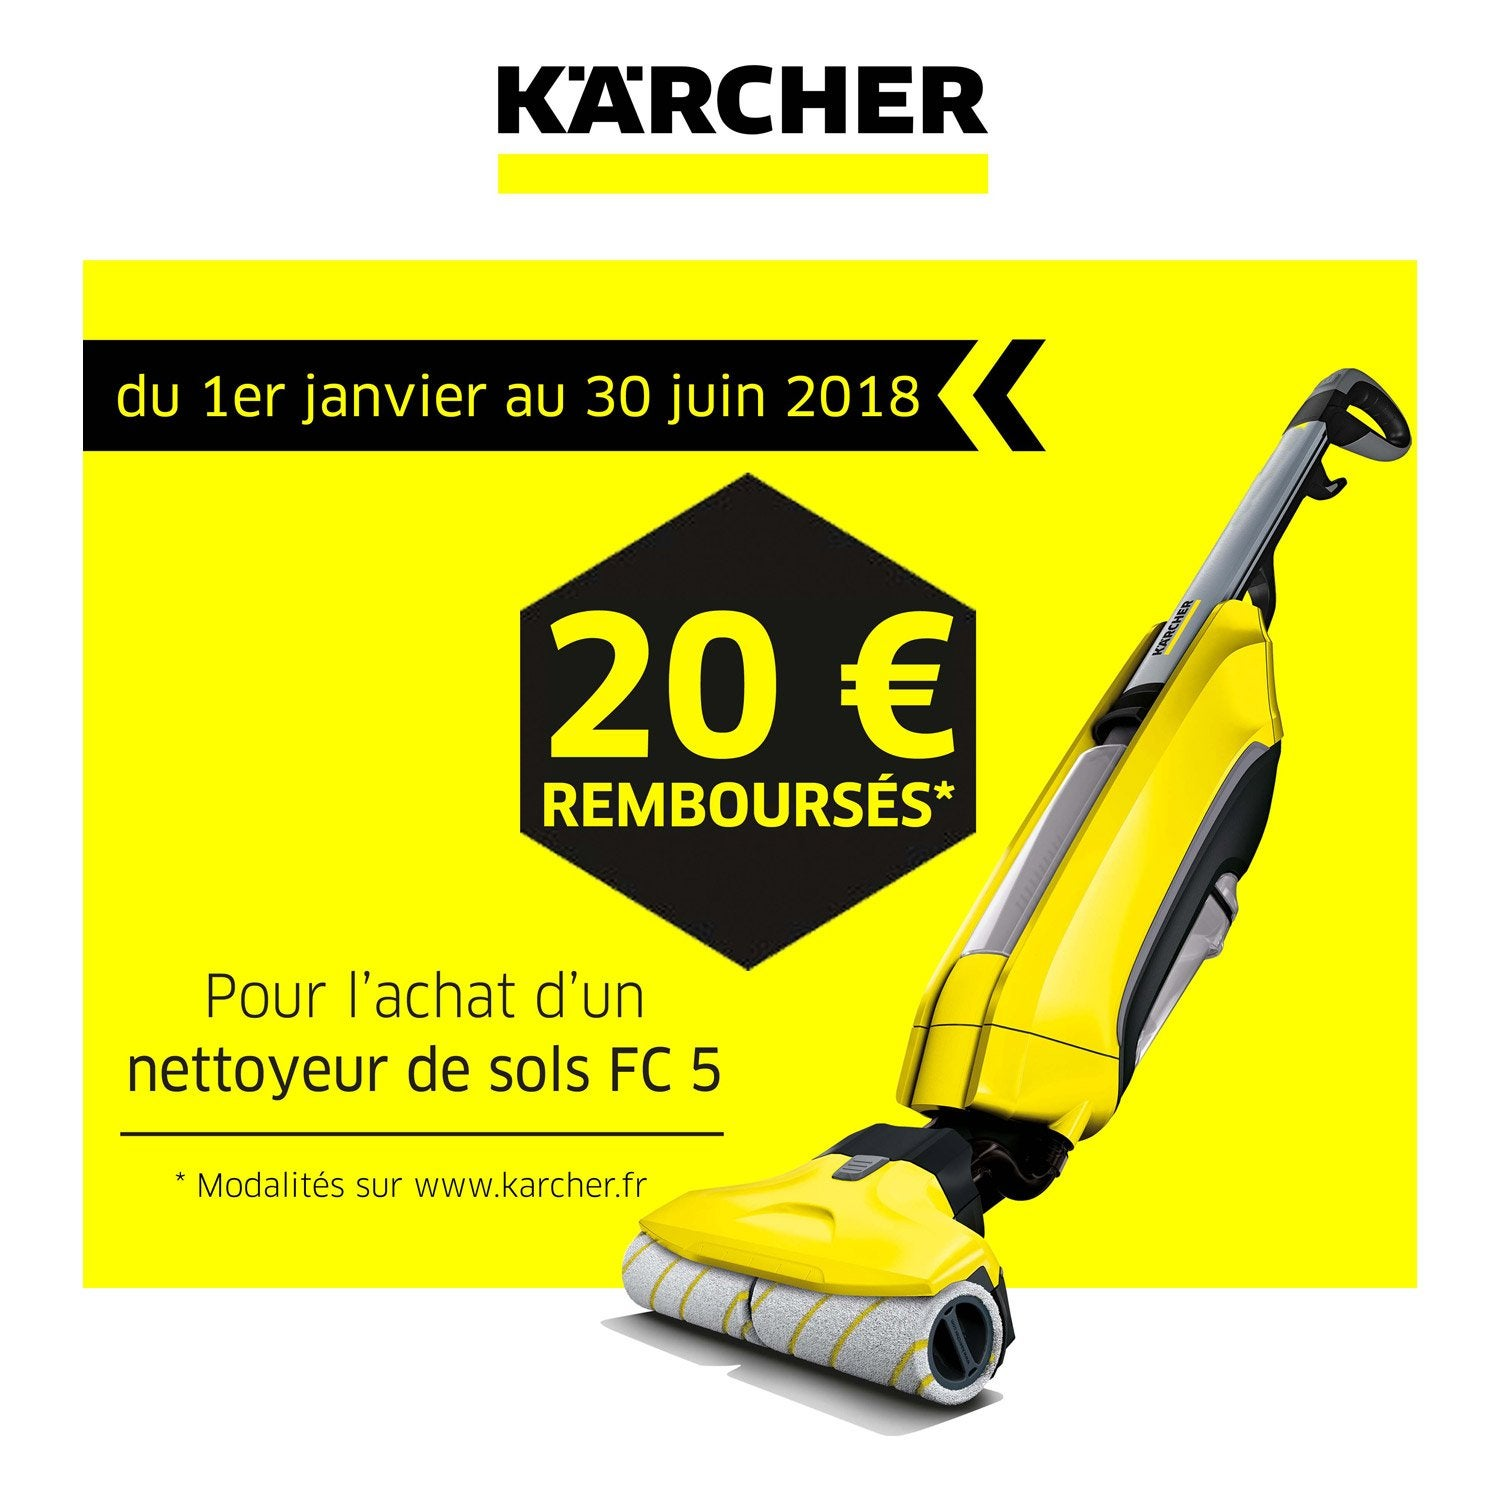 nettoyeur pour sols karcher fc5 460 w leroy merlin. Black Bedroom Furniture Sets. Home Design Ideas